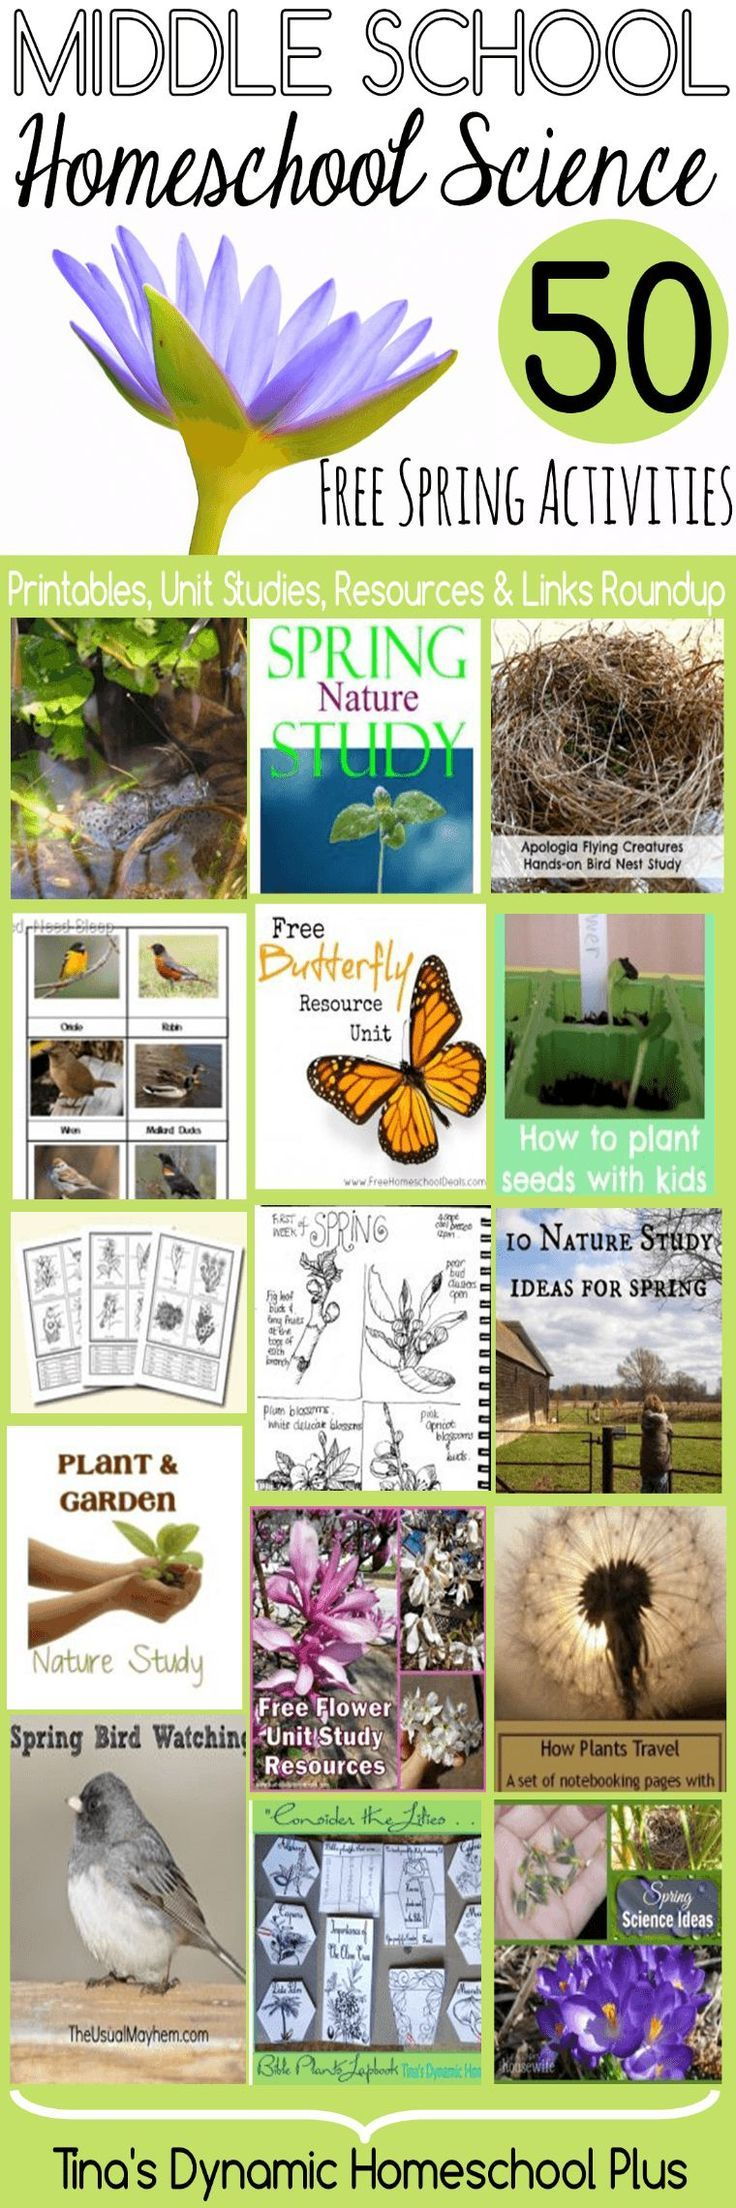 Middle School Homeschool Science 50 Free Spring Activities | Tina's Dynamic Homeschool Plus